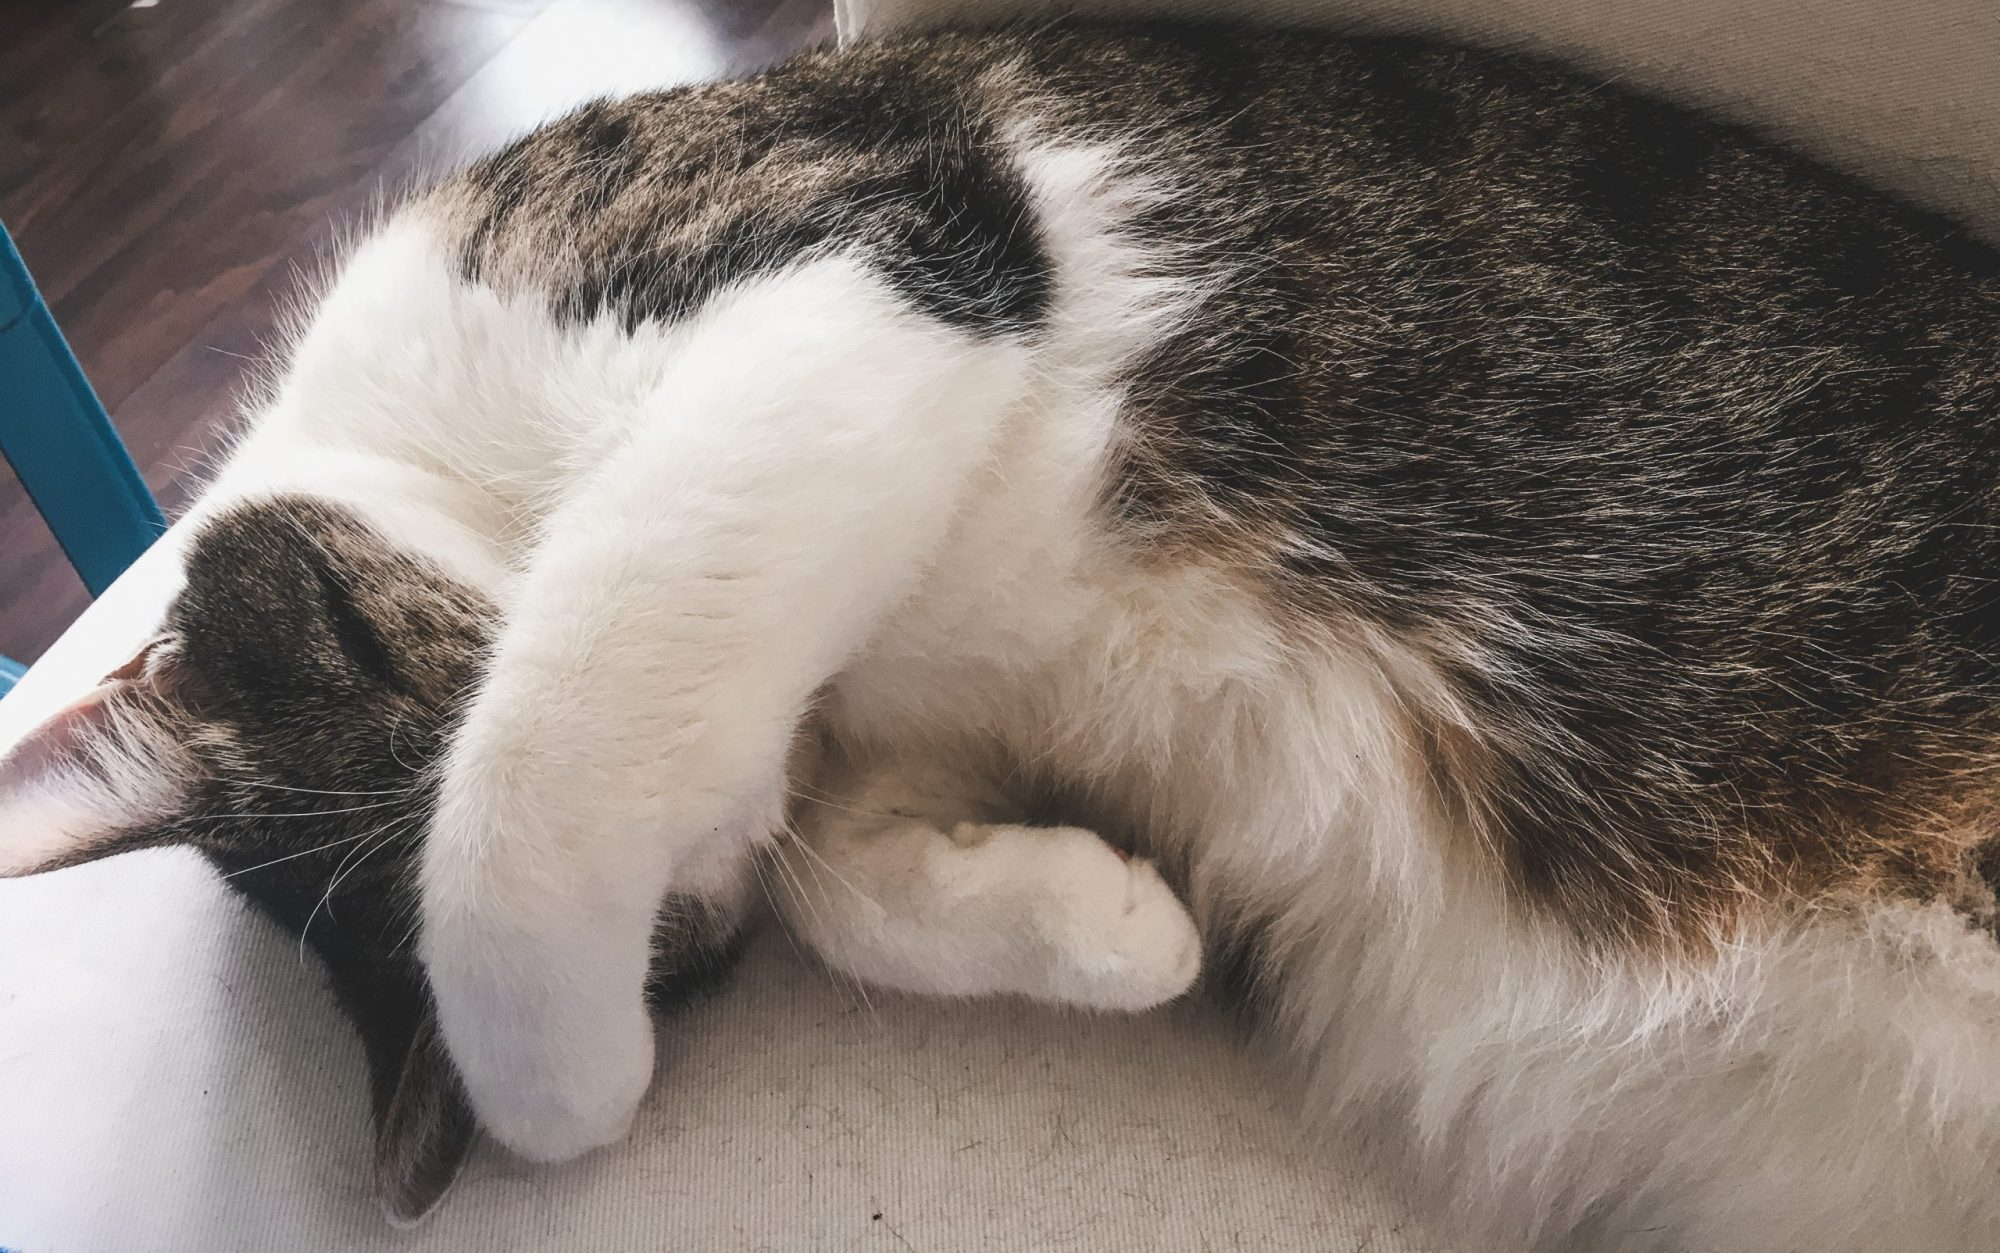 Cute black, grey, and white cat with paw over its face